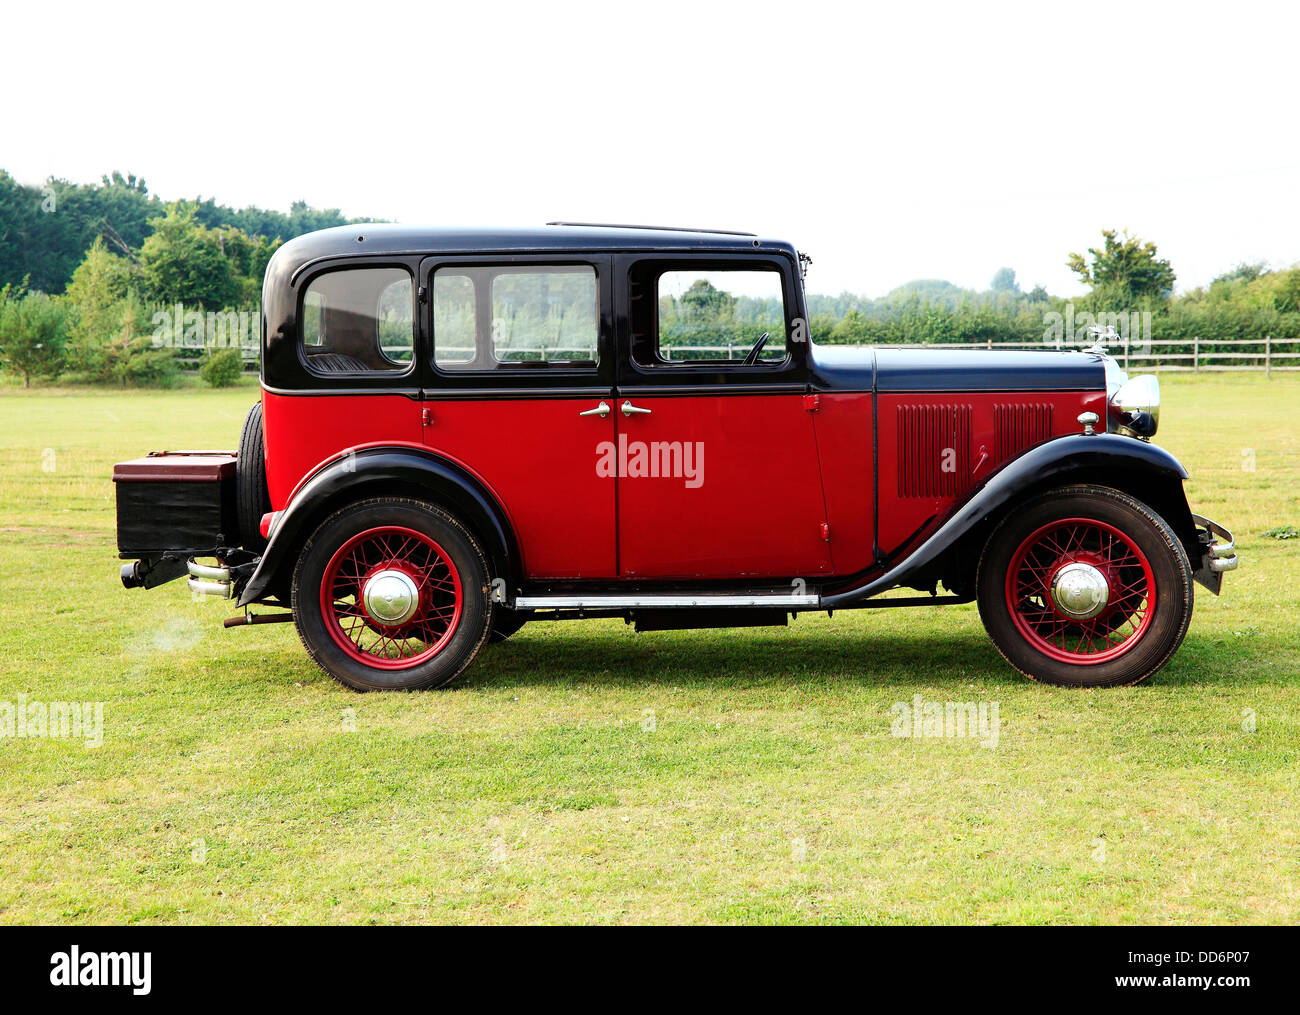 Classic Car Uk Stock Photos & Classic Car Uk Stock Images - Alamy